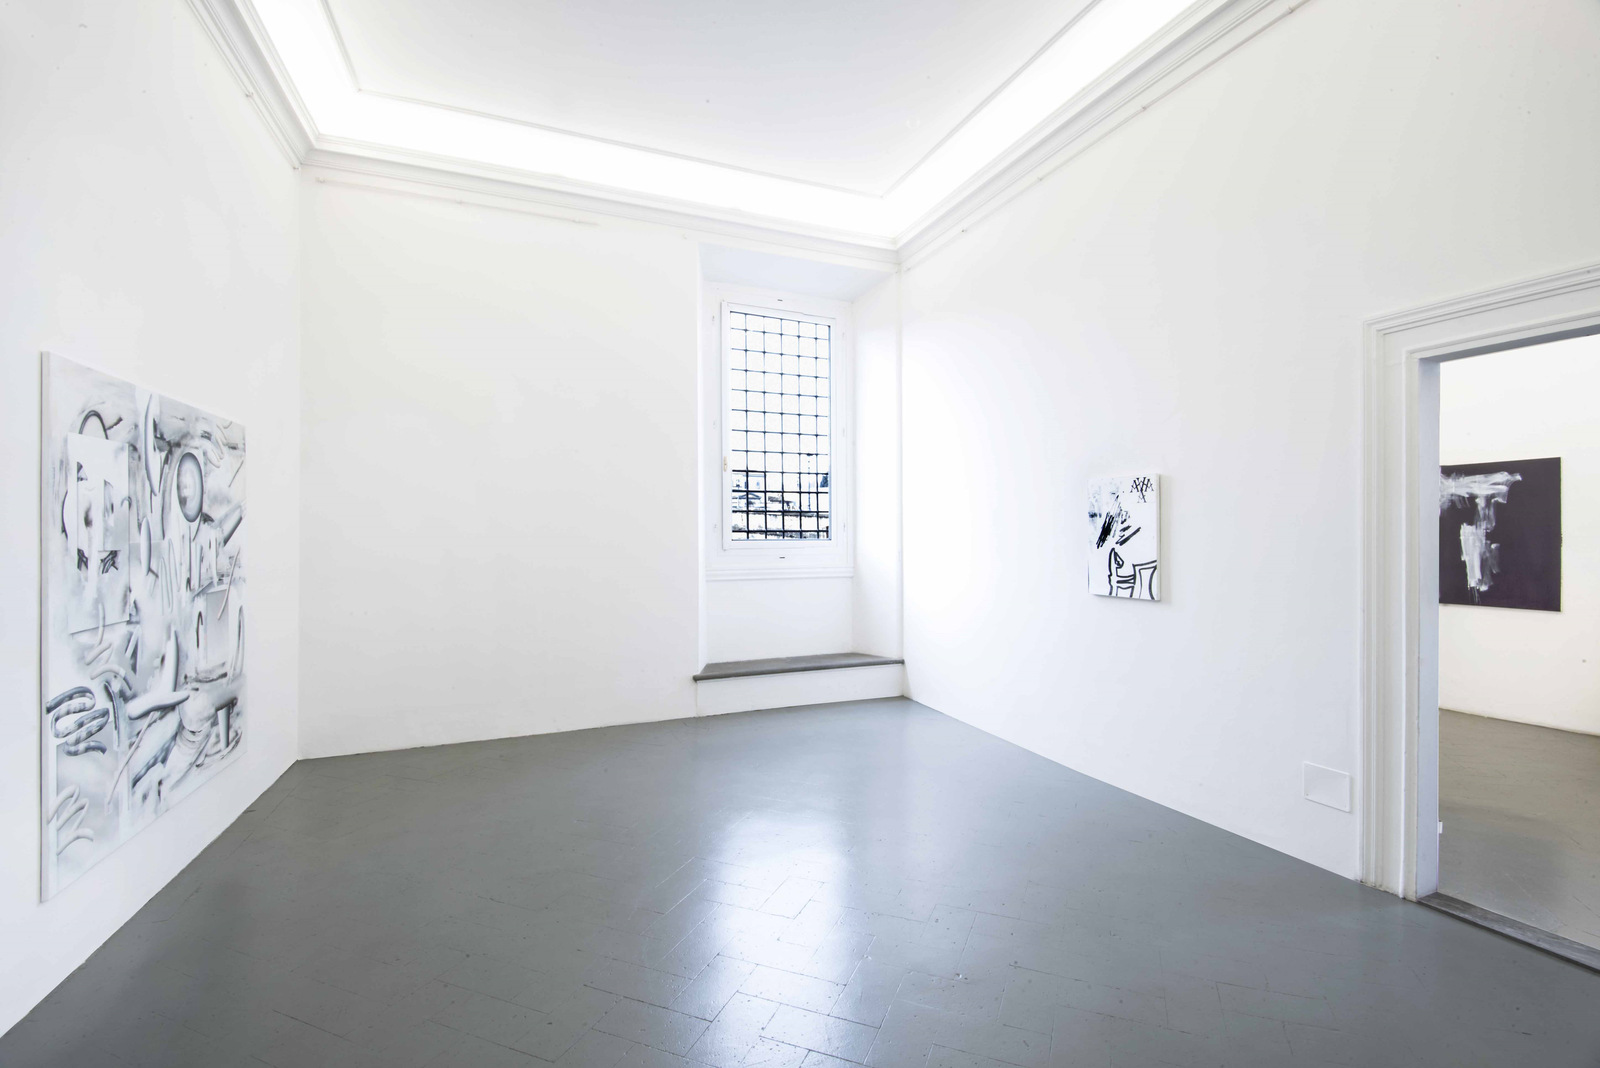 2.Installation View, Michael Debatty, Sofia Leiby, Alexander Lieck. Courtesy of Eduardo Secci Contemporary